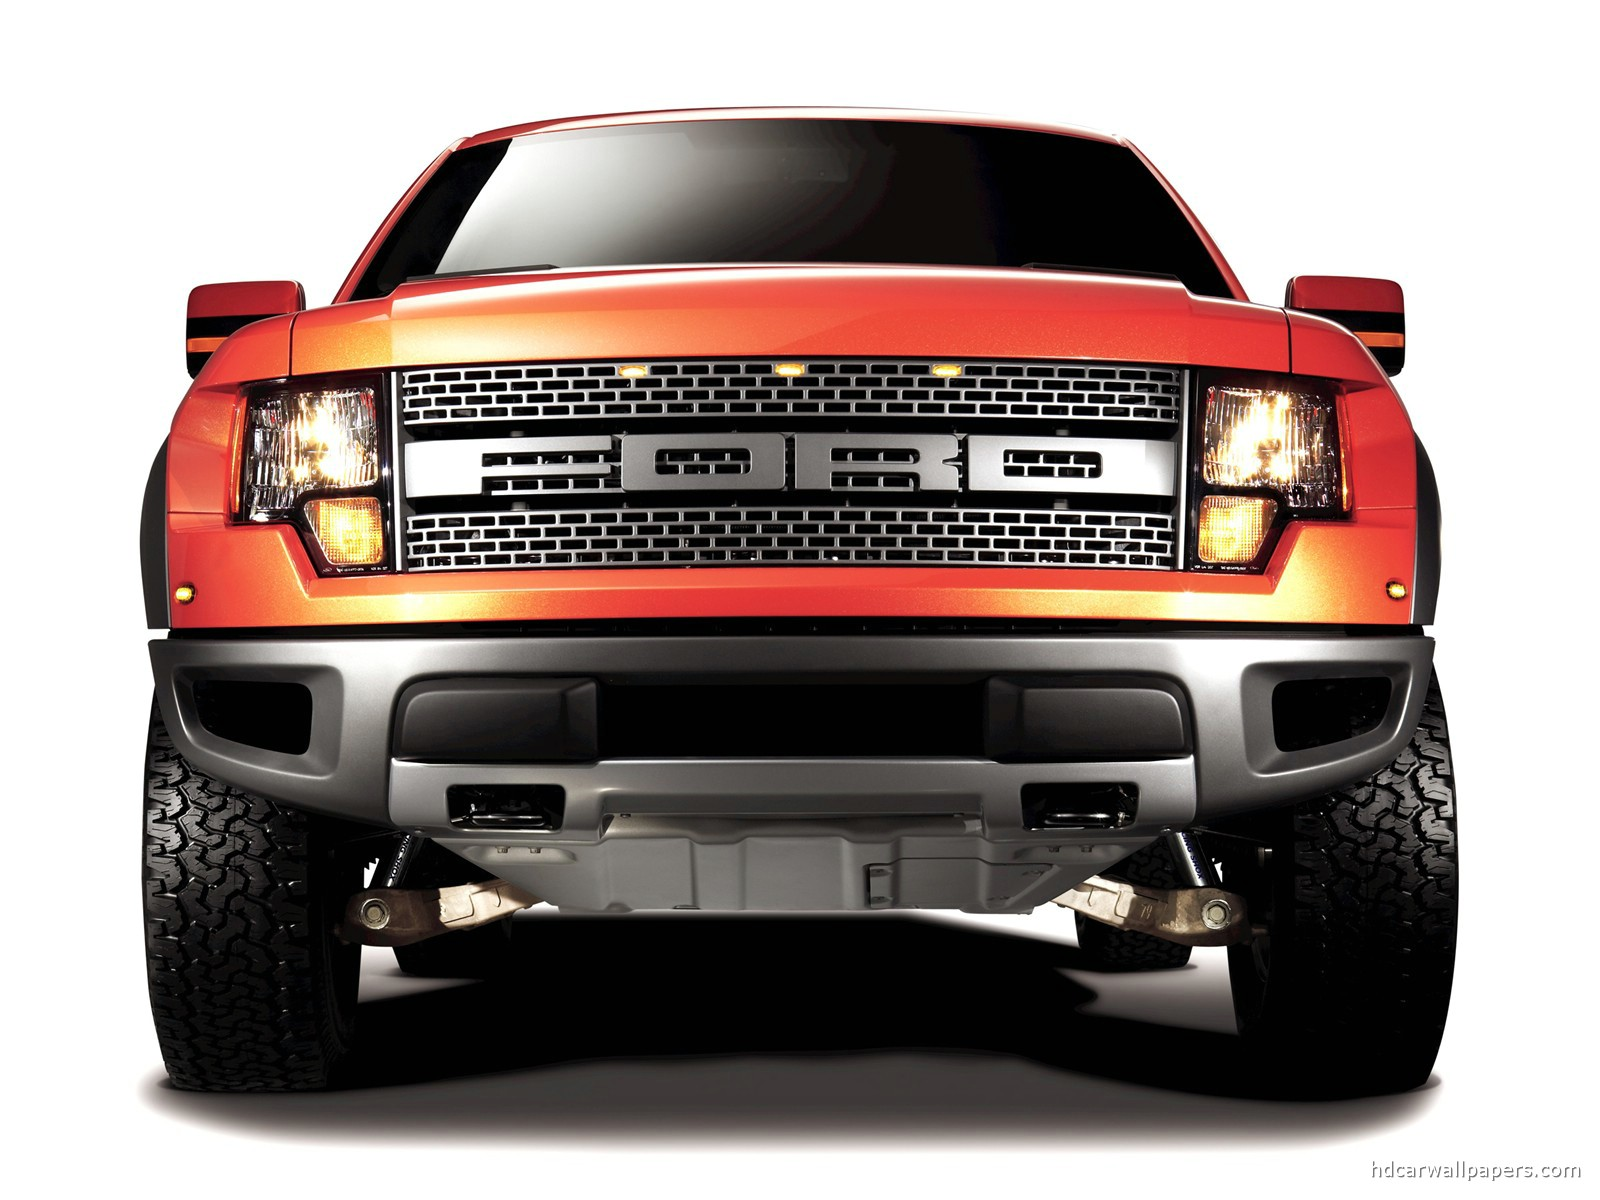 2010 Ford F150 SVT Raptor 2 1544.8 Kb